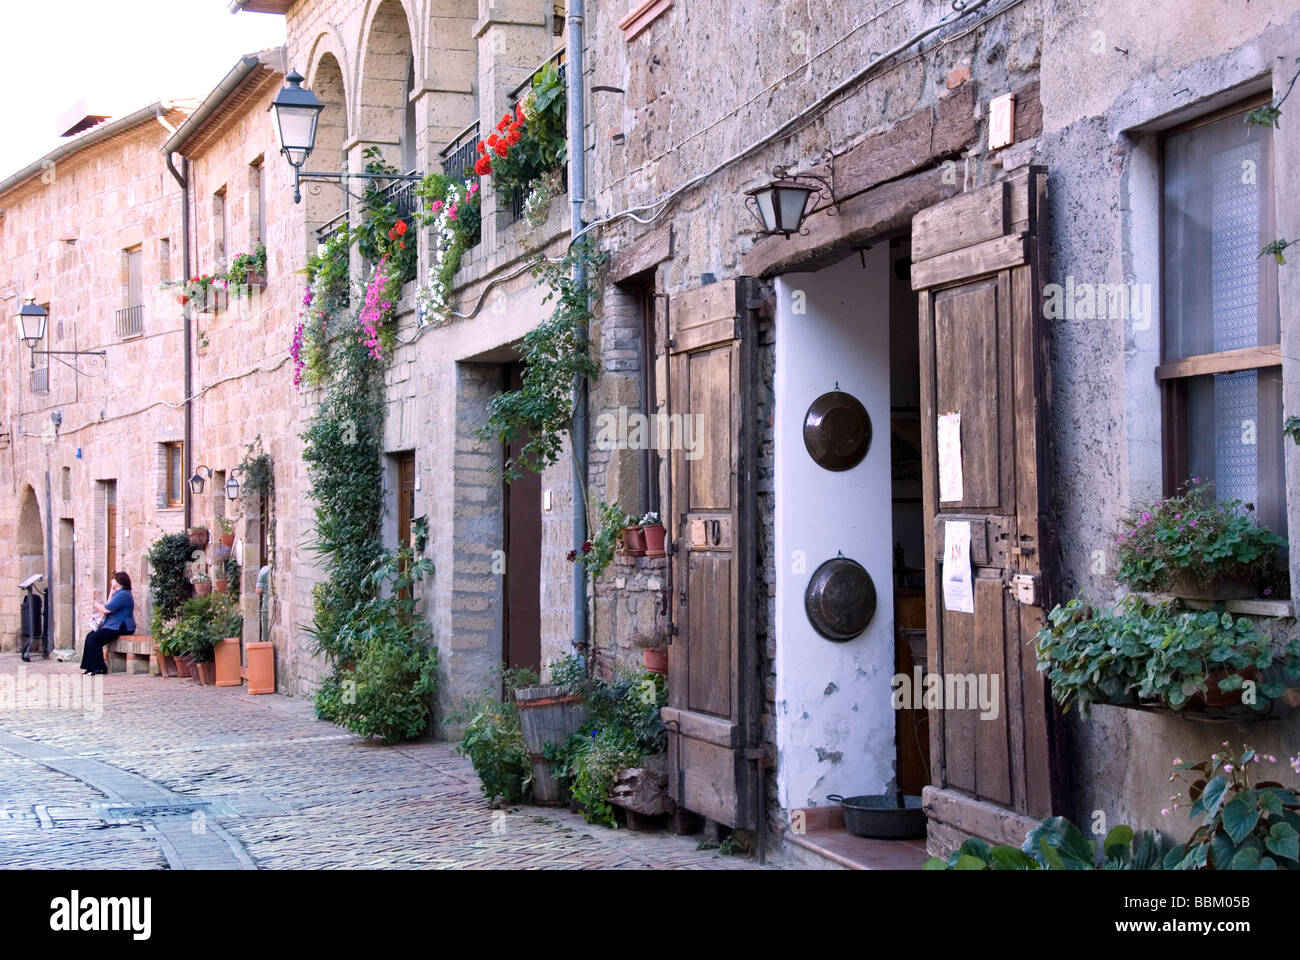 Sovana an Etruscan settlement and important town in the middle ages and birthplace of Pope Gregory VII - Stock Image